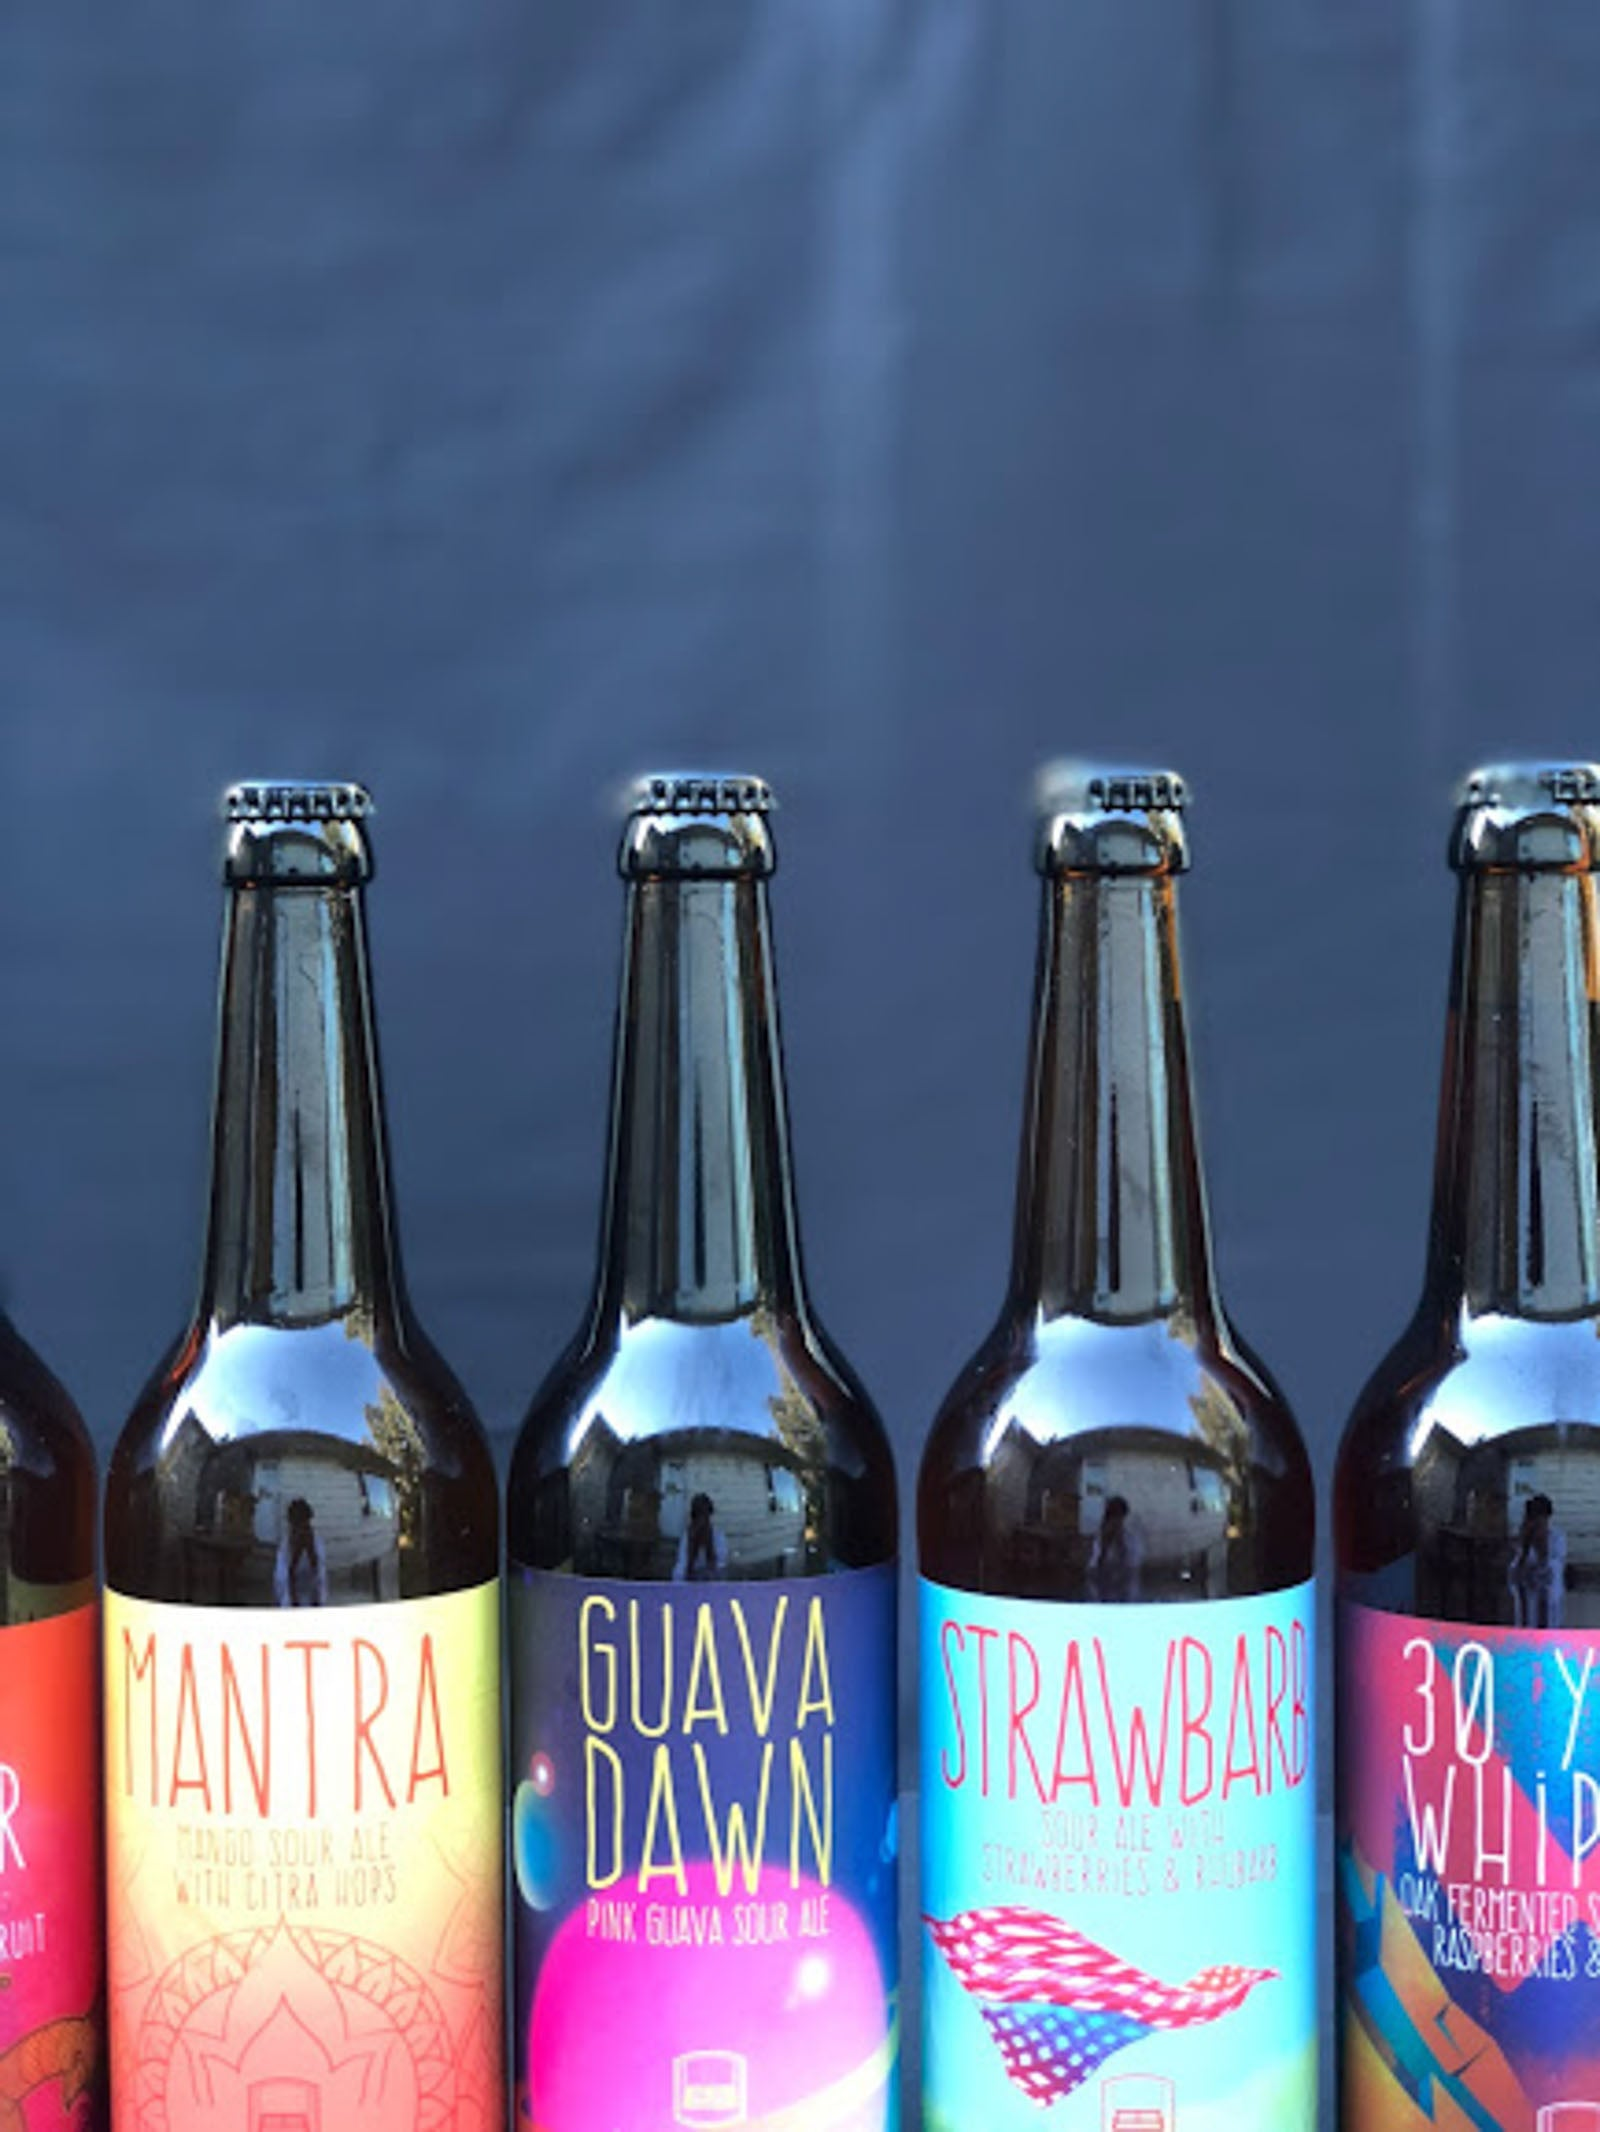 Urban Family Brewing Mantra Sour Ale with Citra Hops Imperial Sour